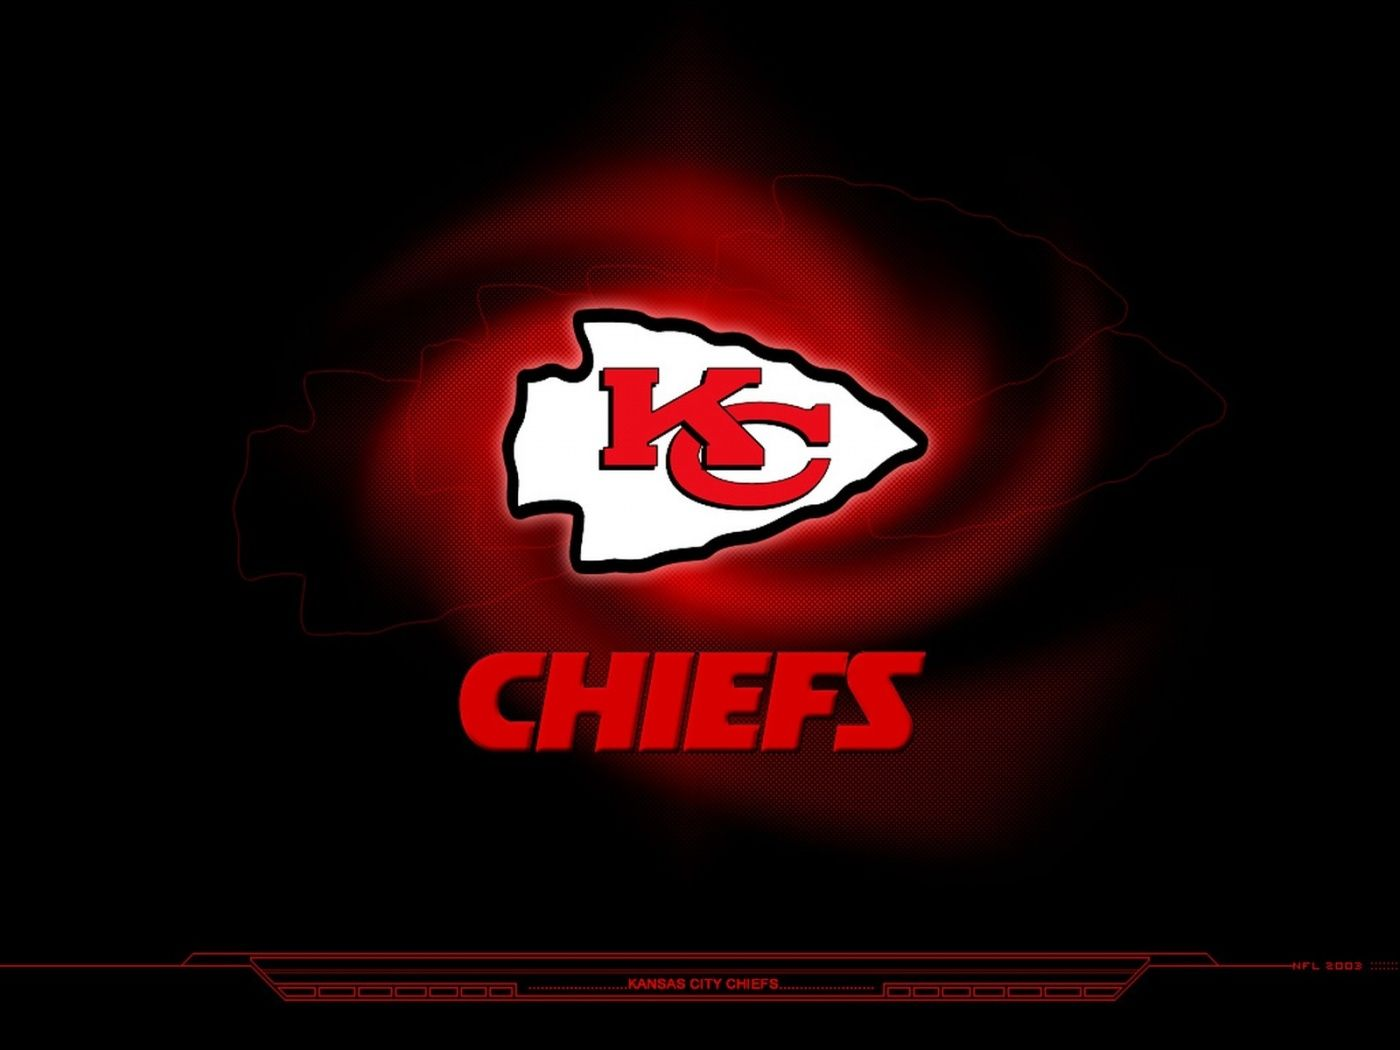 Kansas City Chiefs Logo Picture Description Download Kansas City Chiefs Brands Logos Desktop Kansas City Chiefs Logo Chiefs Wallpaper Kansas City Chiefs